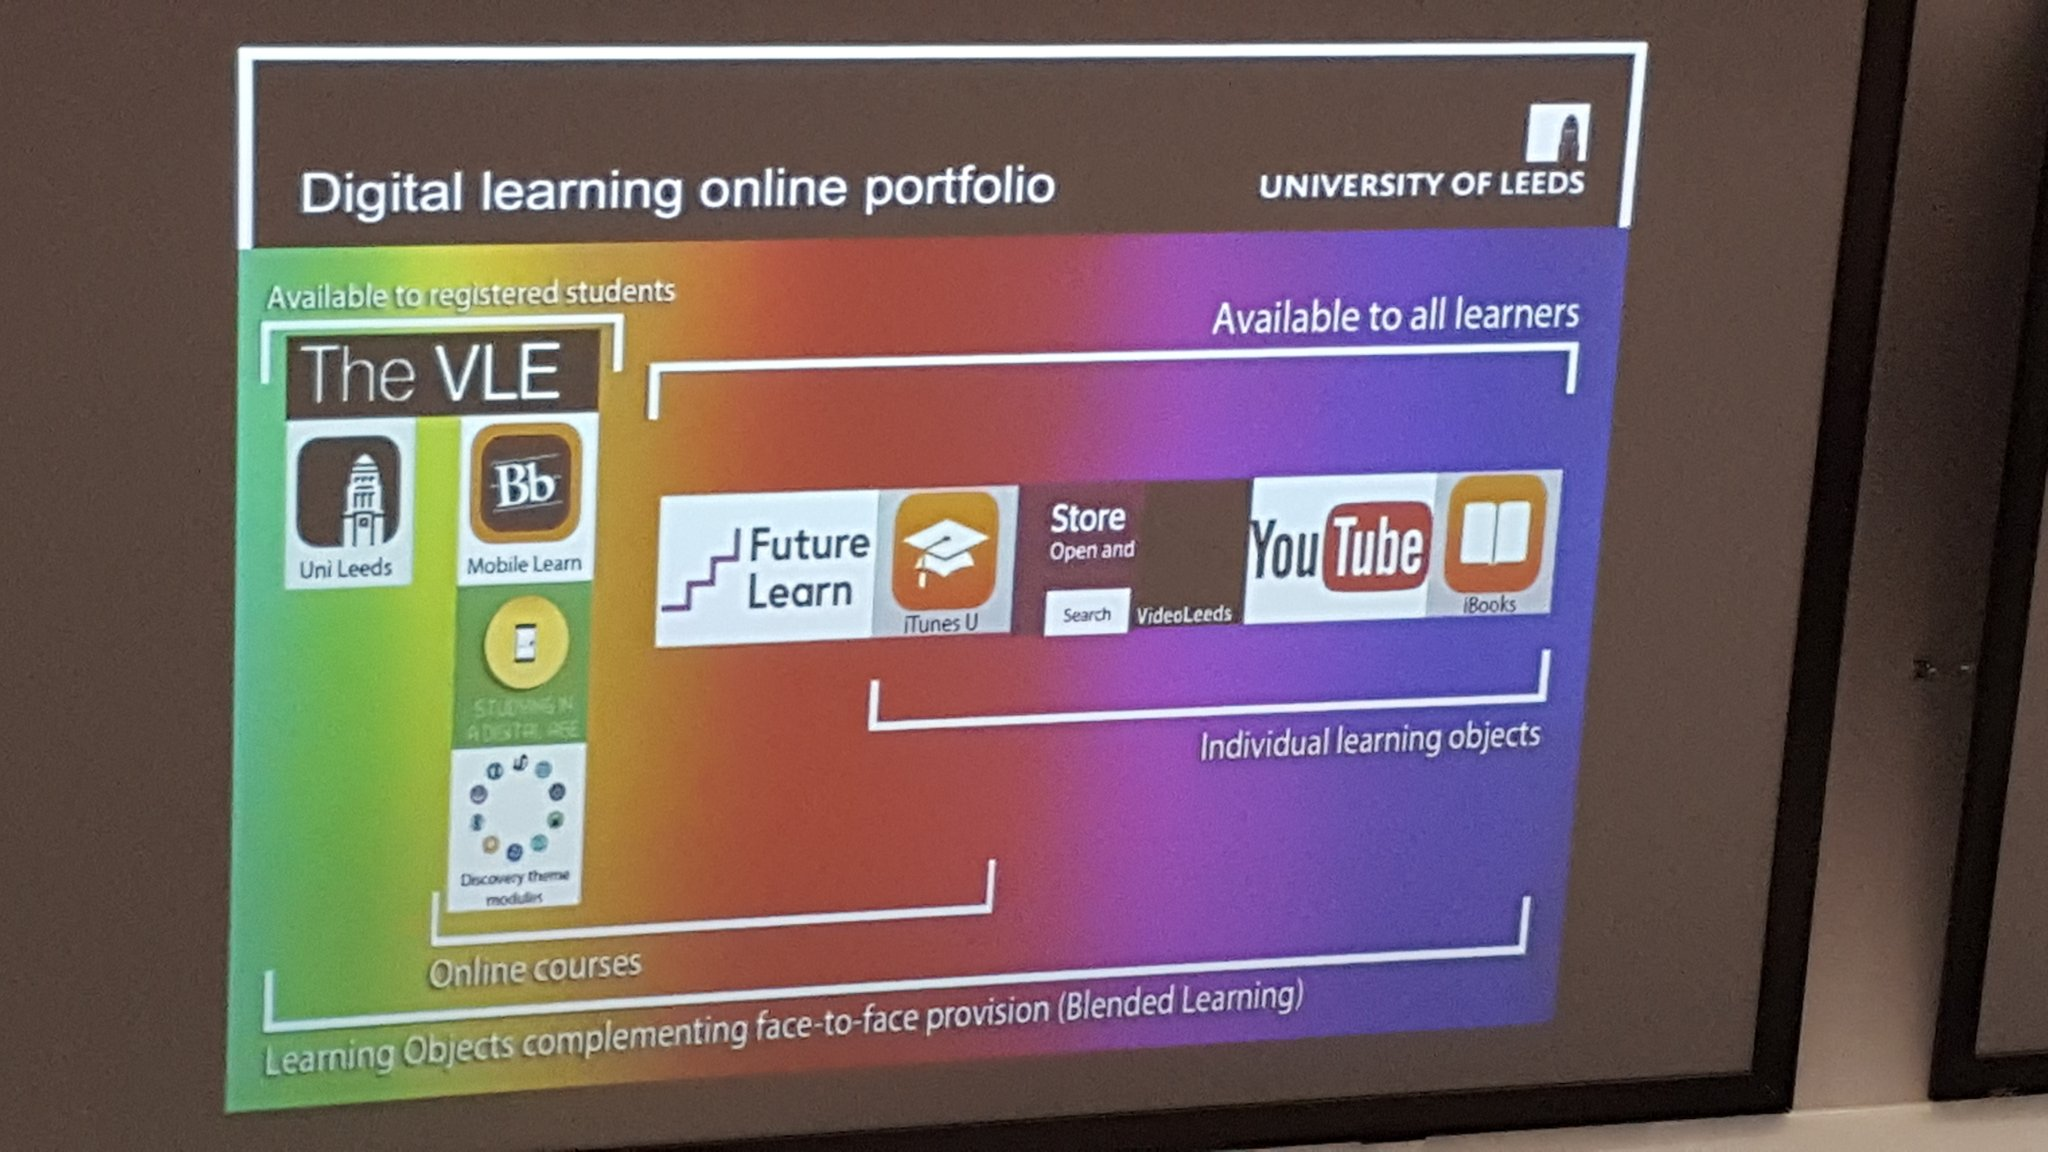 Getting learning out there through multiple digital platforms. Leeds now using these digital resources to advance #CUCEI17 https://t.co/2ZKHeu4A1q